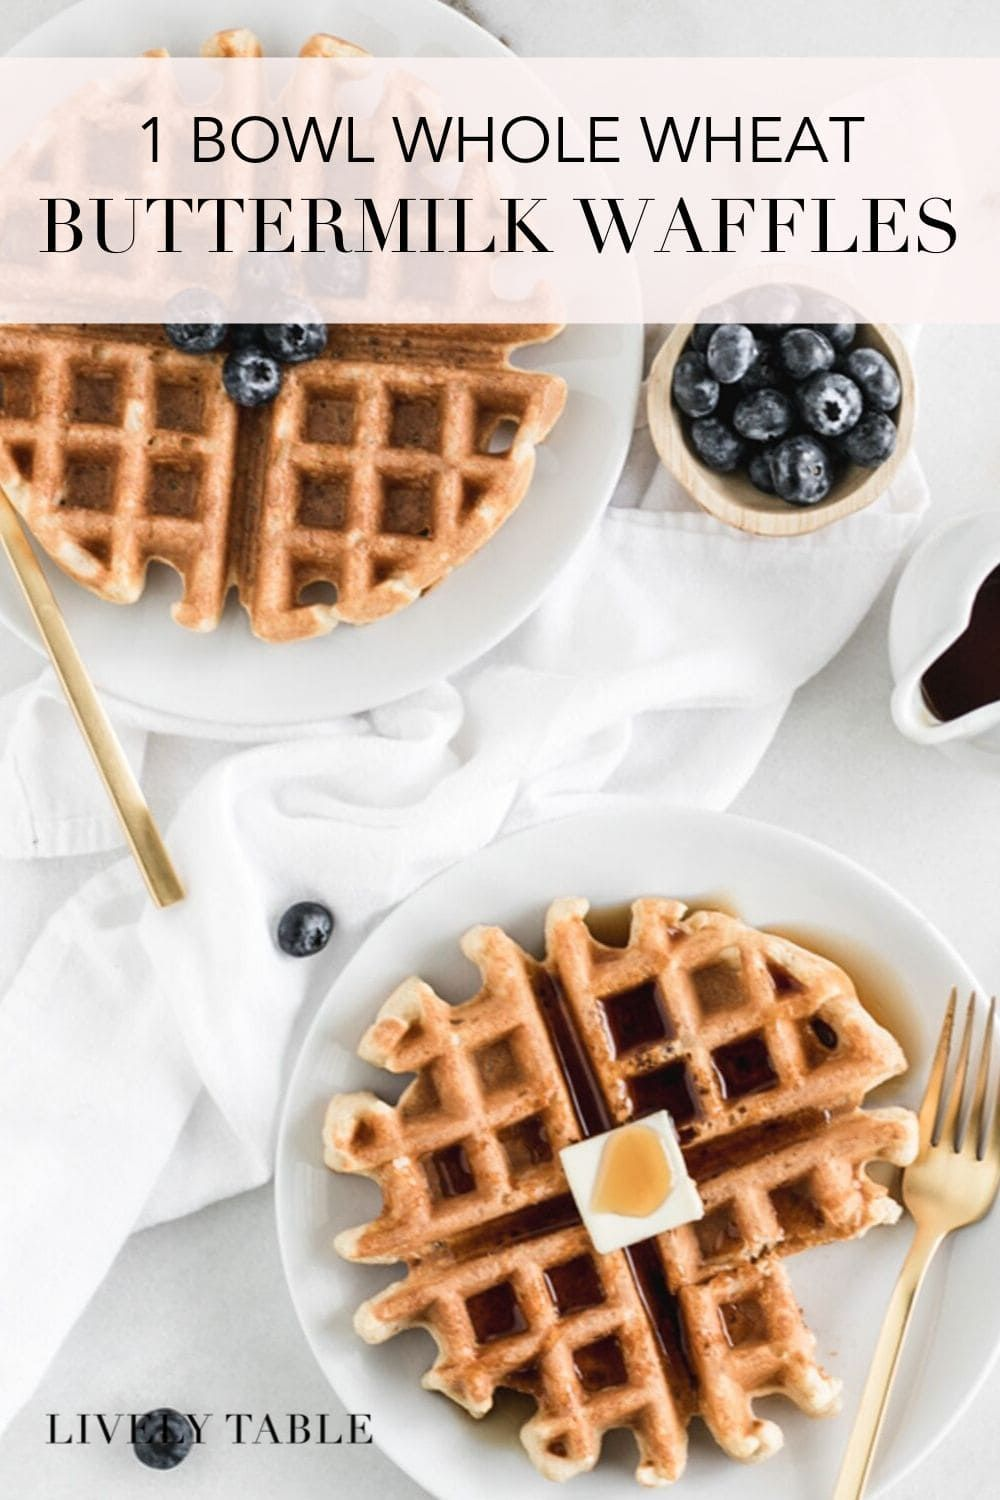 One Bowl Whole Wheat Buttermilk Waffles Recipe In 2020 Healthy Waffles Yummy Food Dessert Whole Wheat Waffles